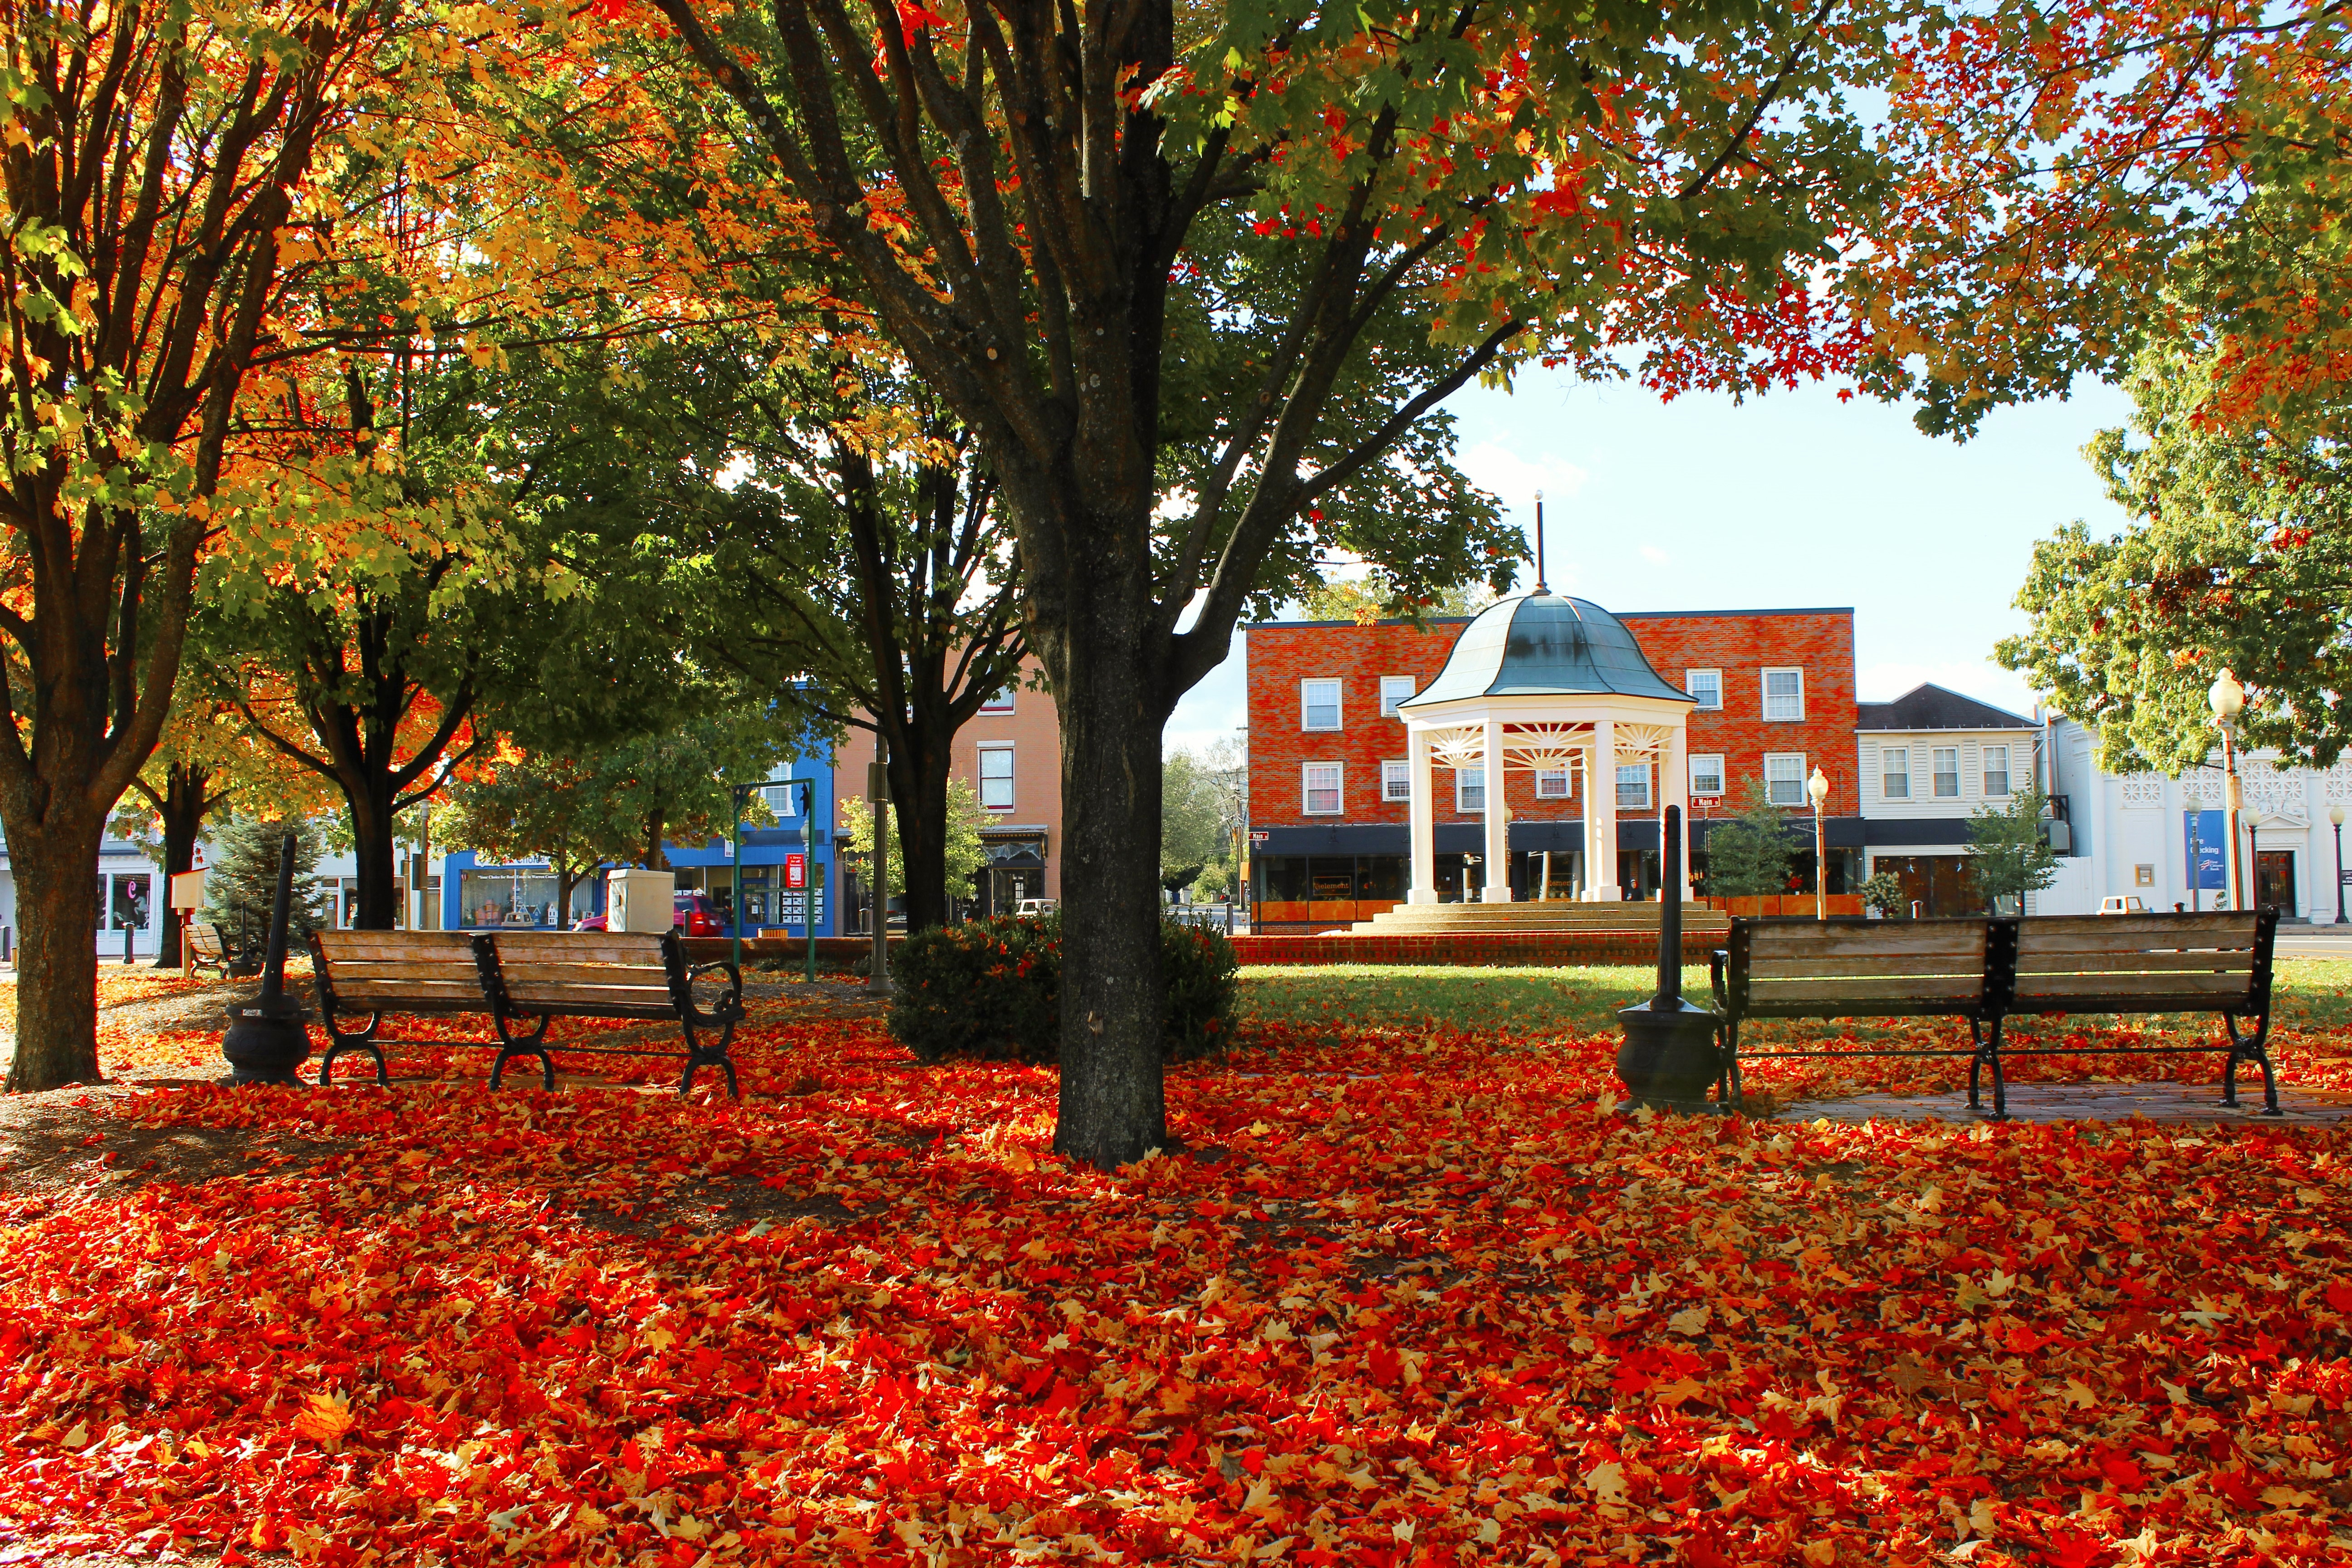 A town square seen during the height of fall. Red and orange leaves are spread across the ground. There is a gazebo in the background.